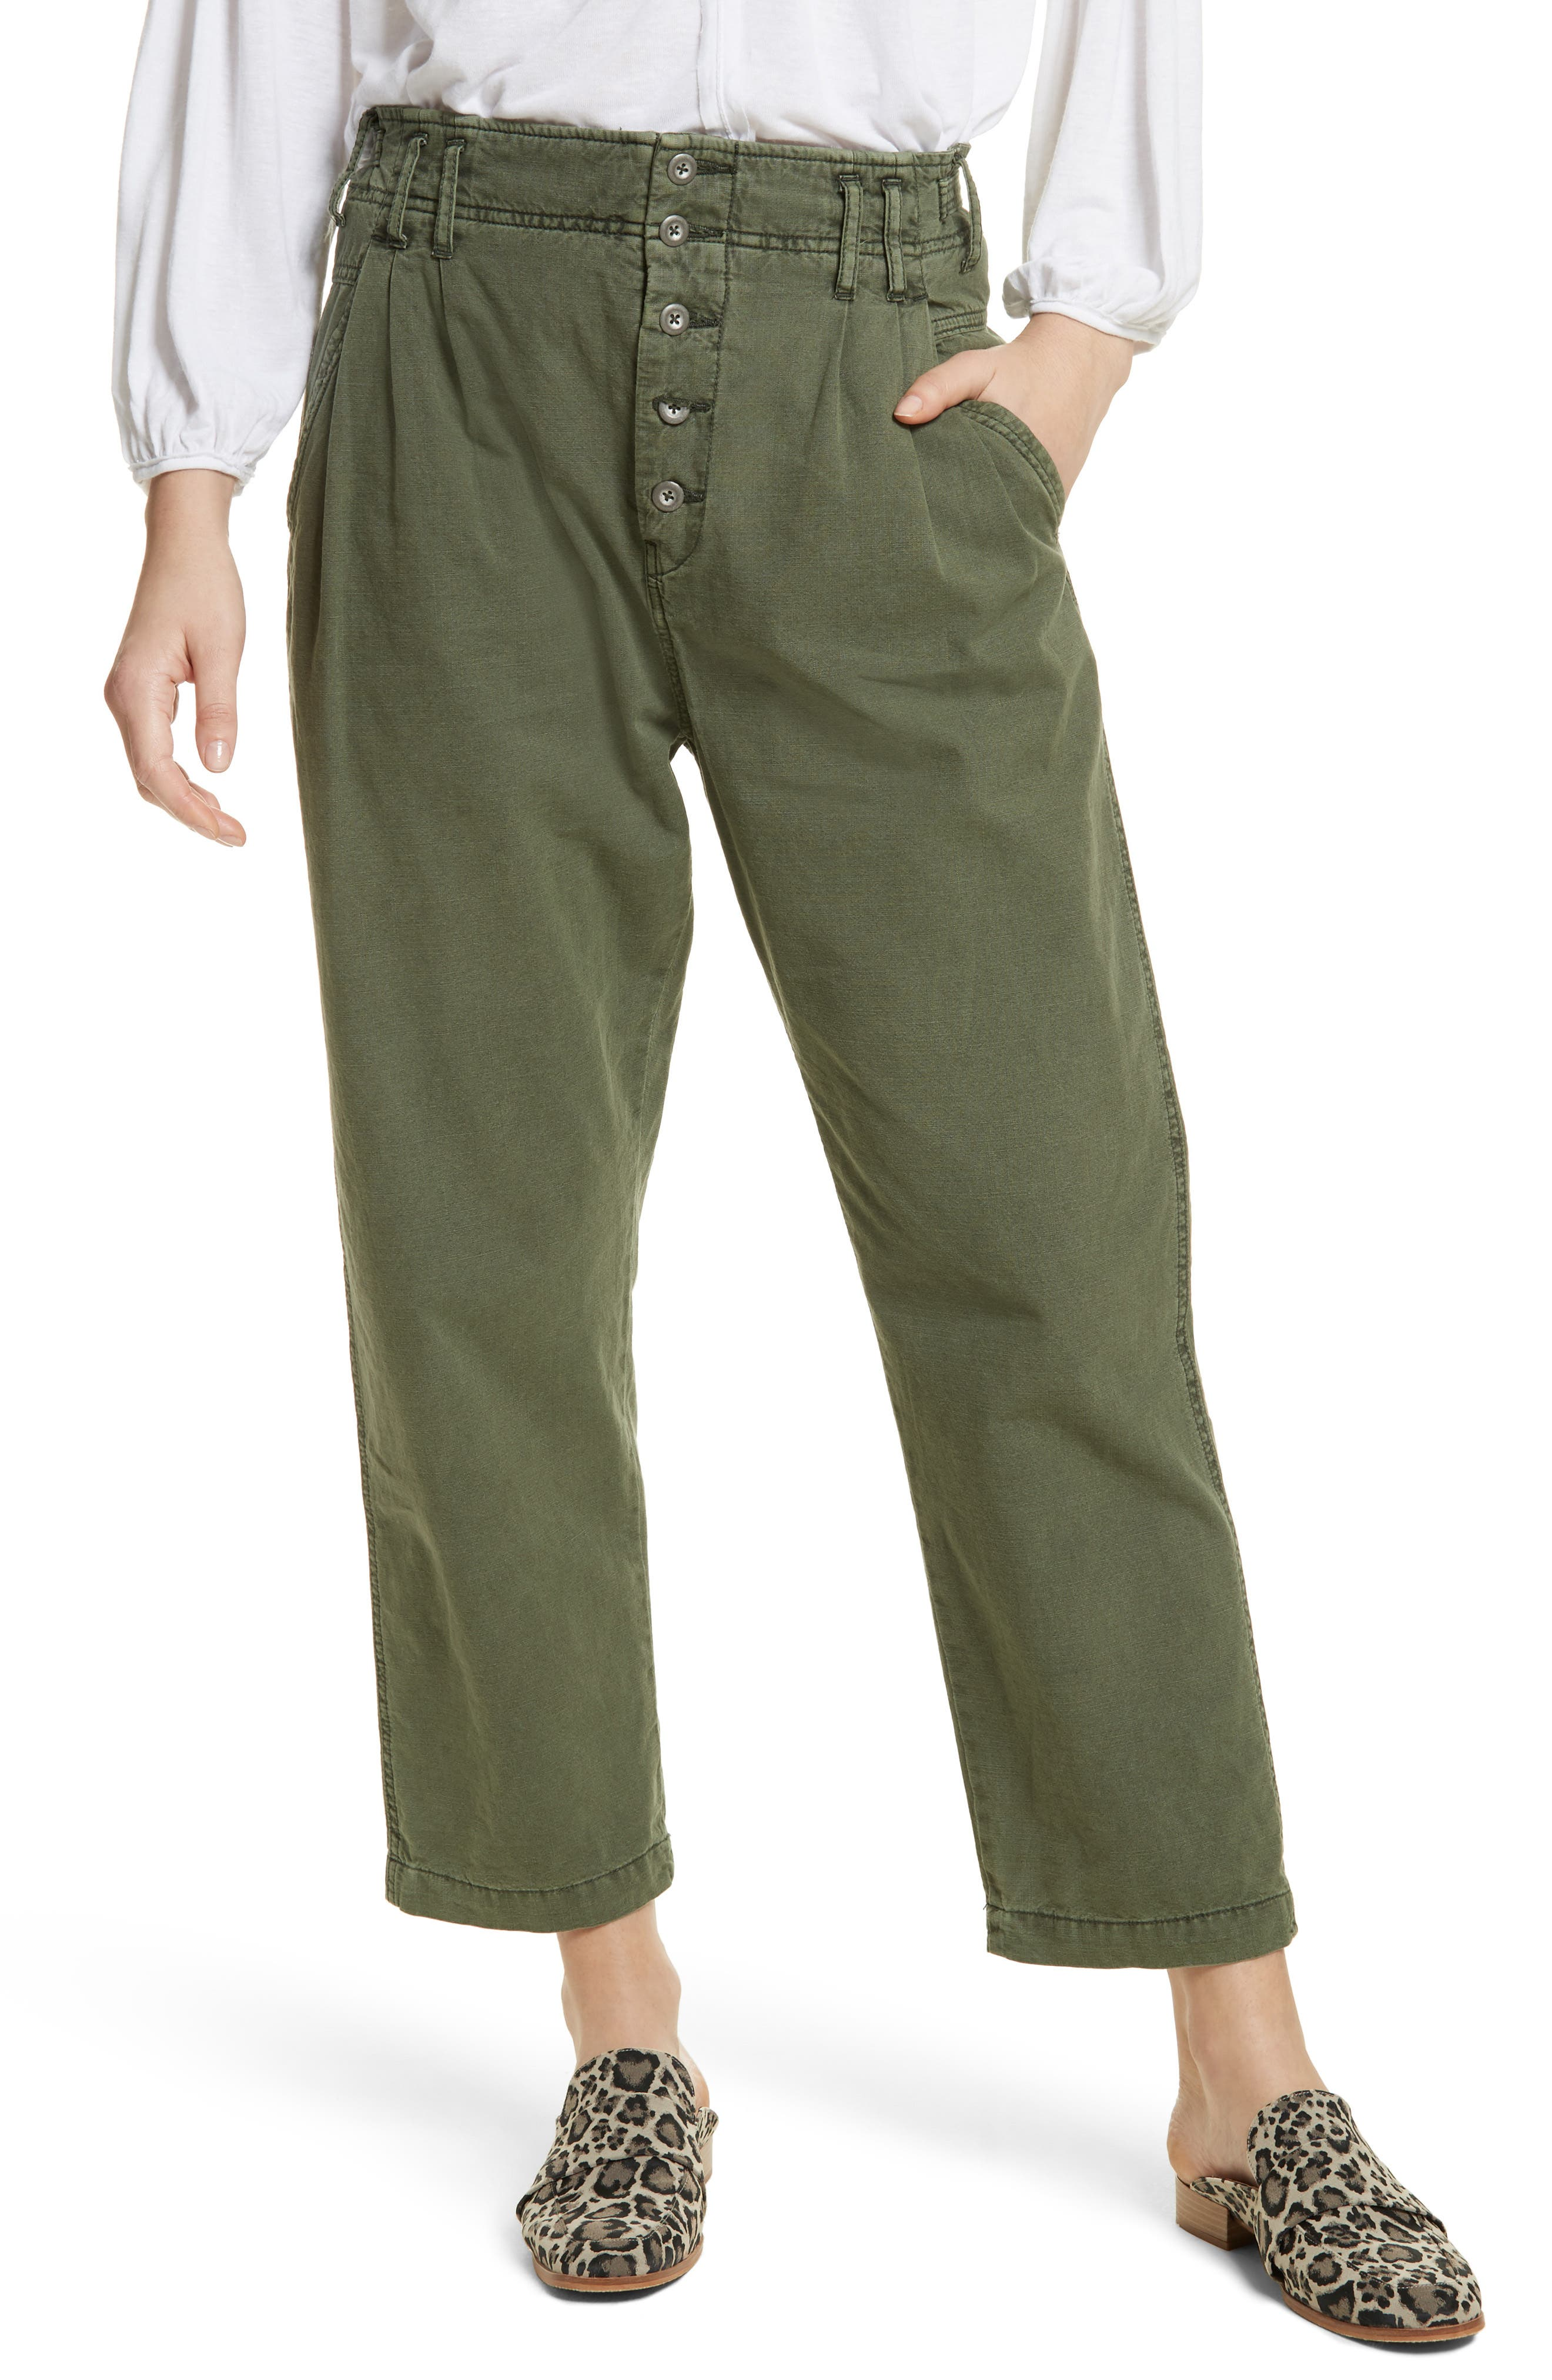 Compass Star Trousers,                             Main thumbnail 1, color,                             328